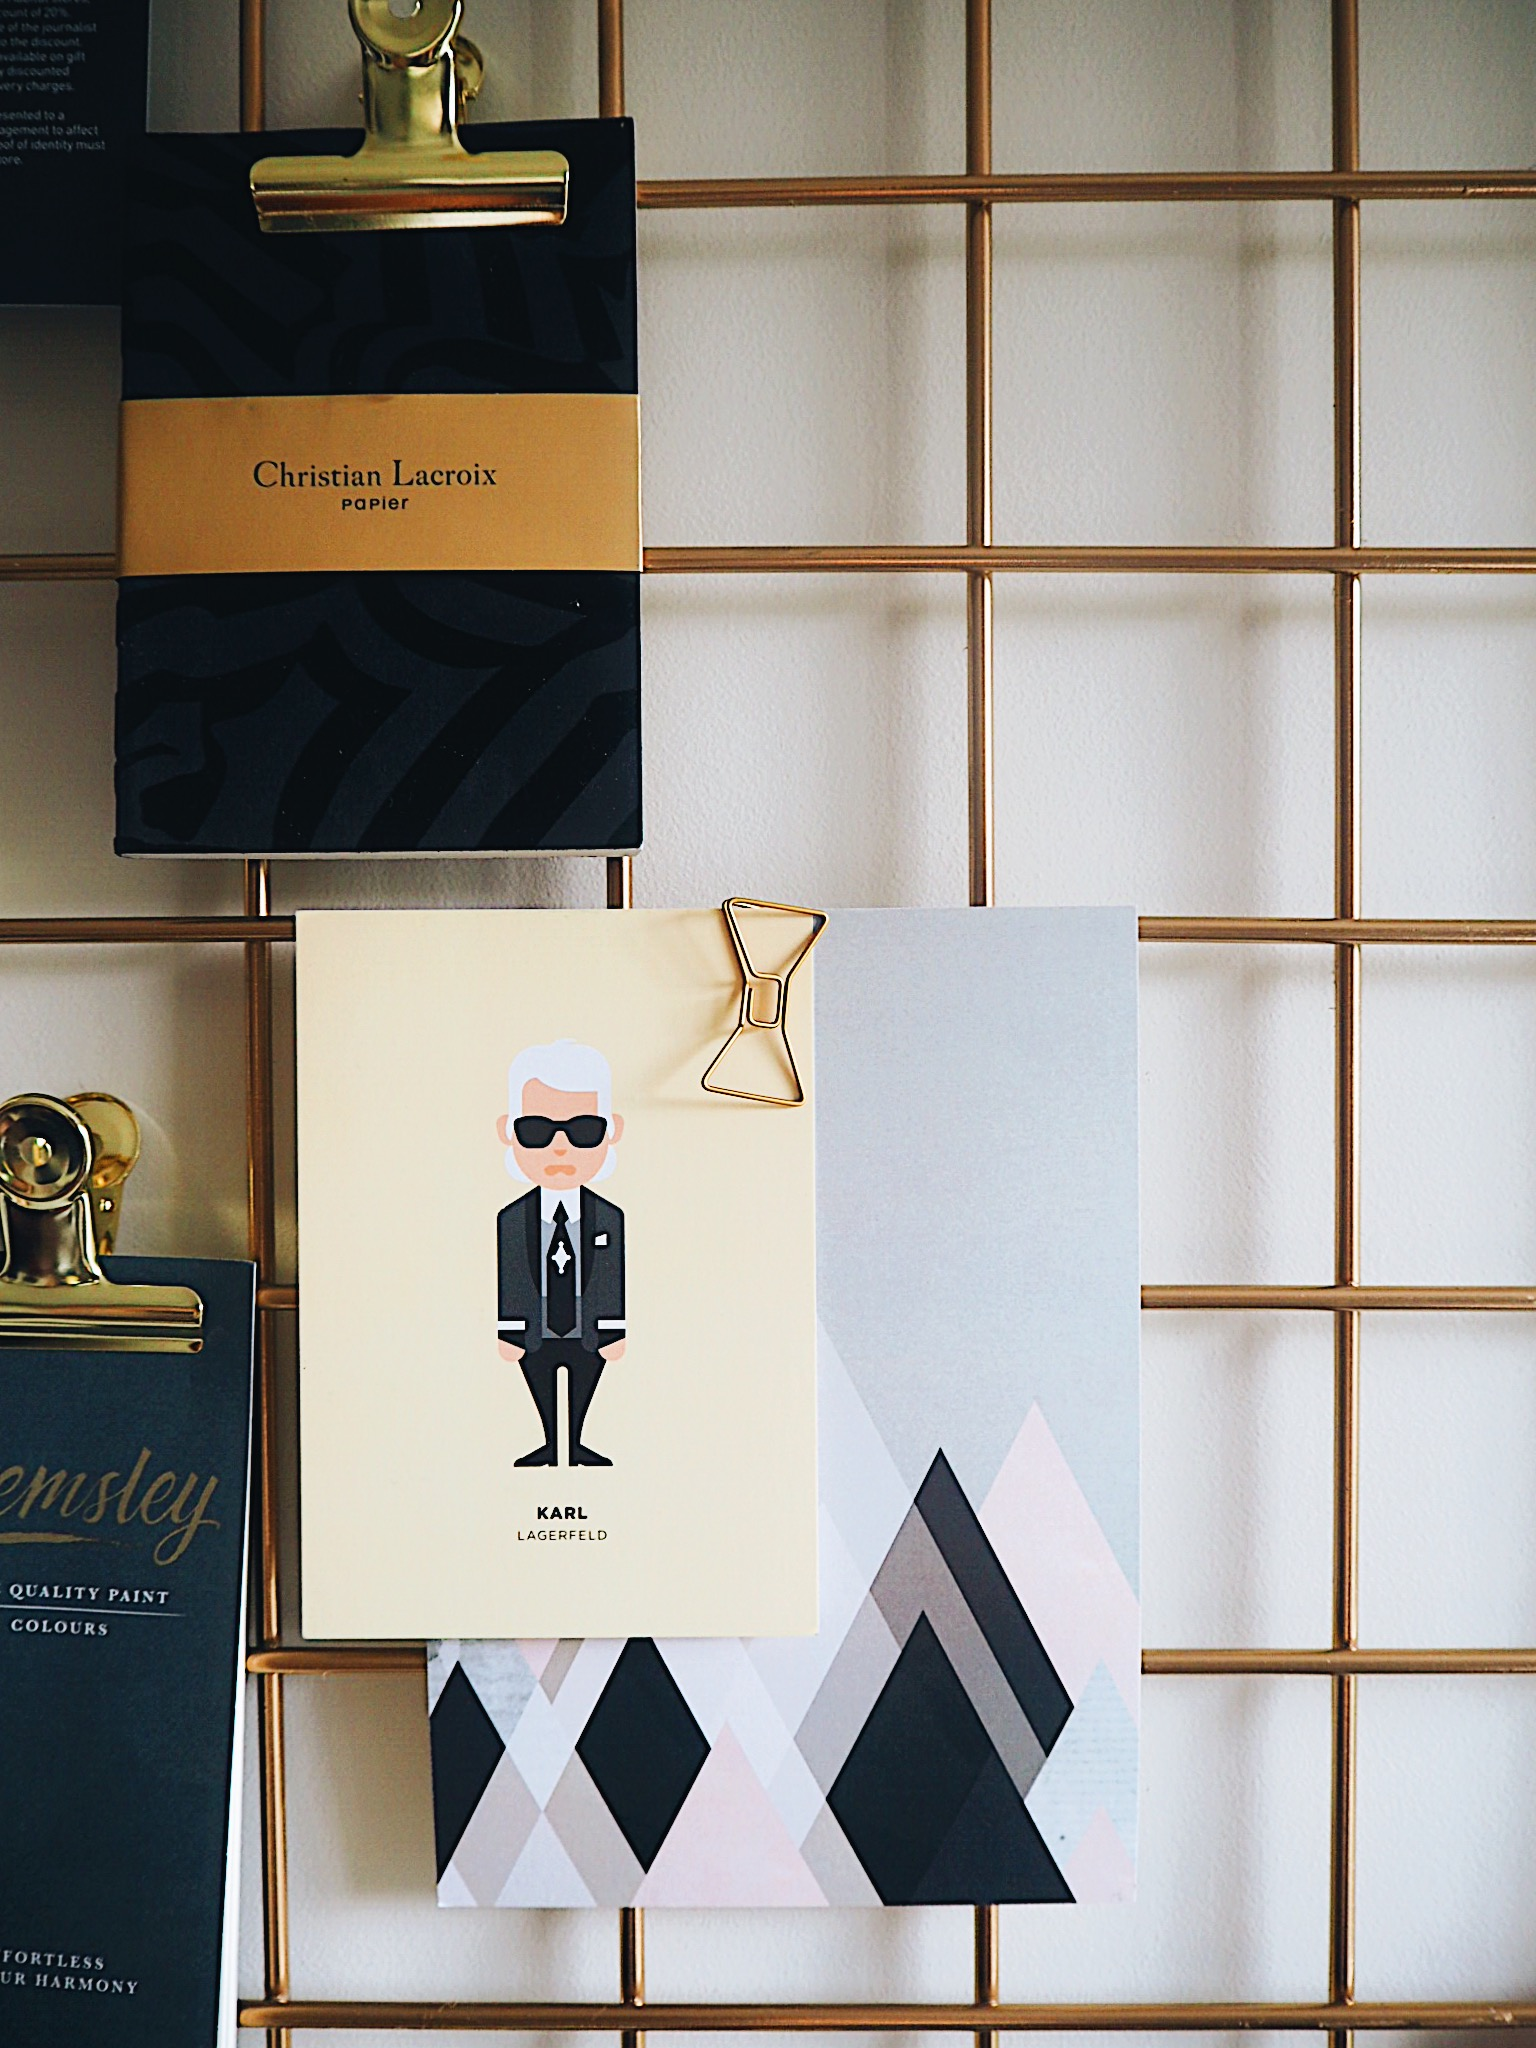 This Karl Lagerfeld postcard is by Image Republic, which you can find out more about  here